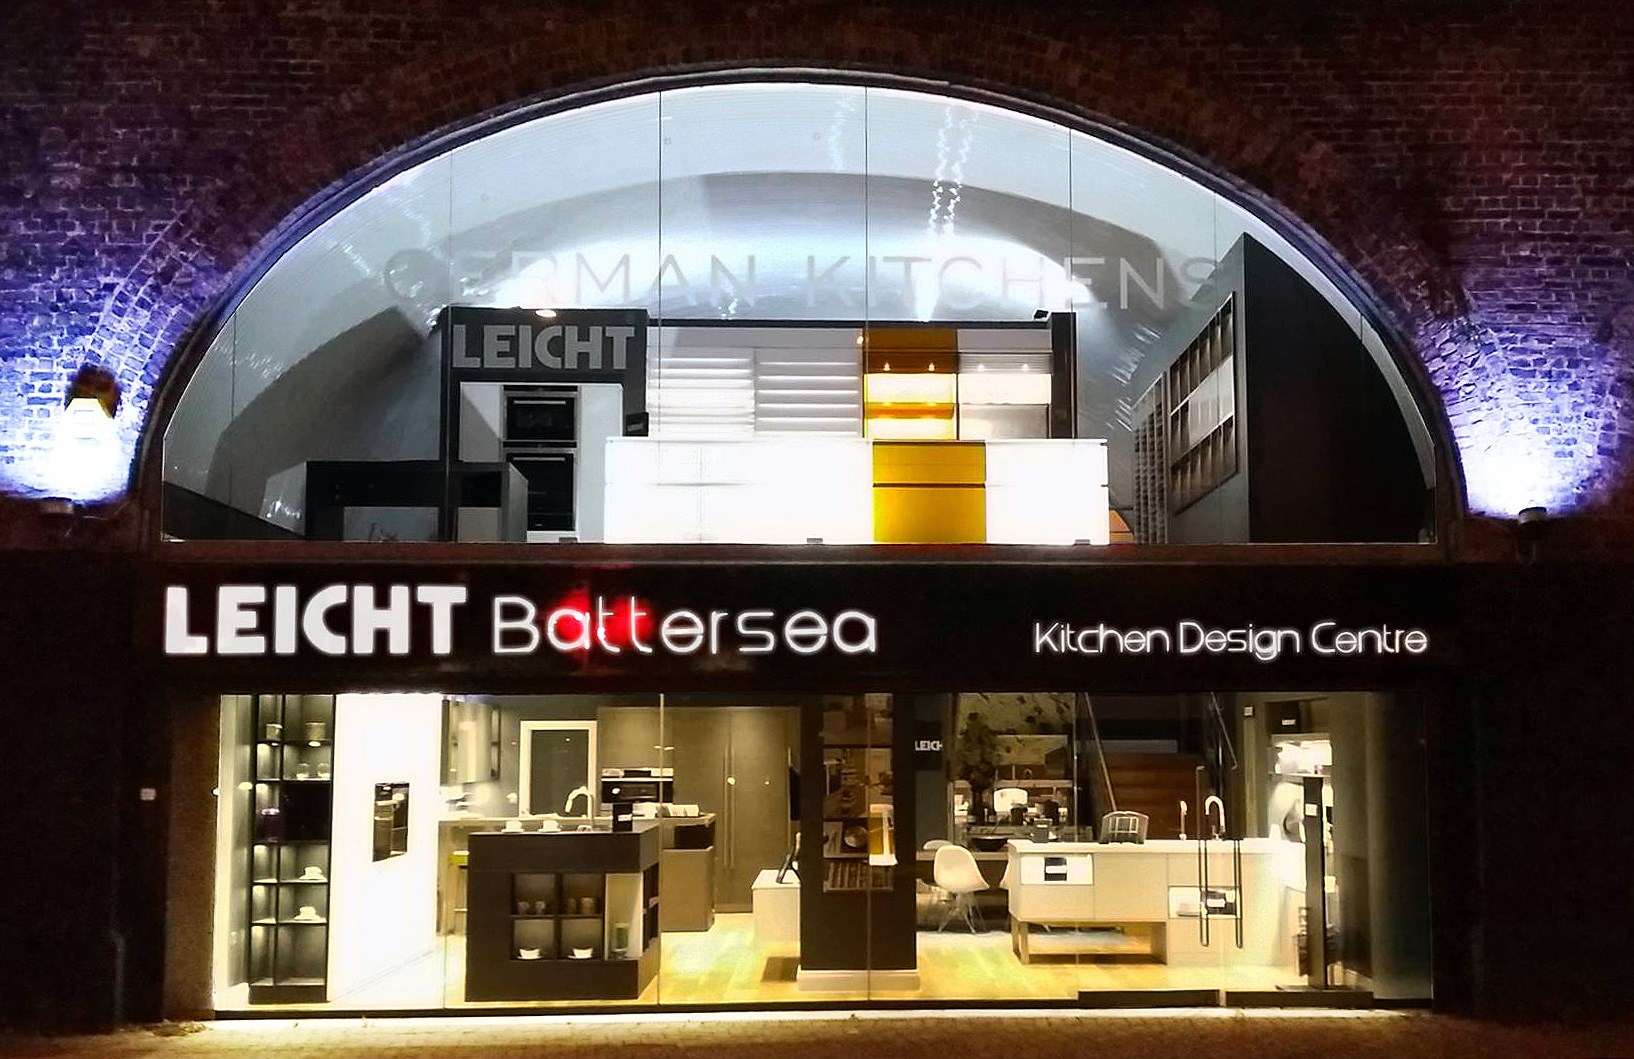 Leicht Kitchen Design Centre Battersea, London